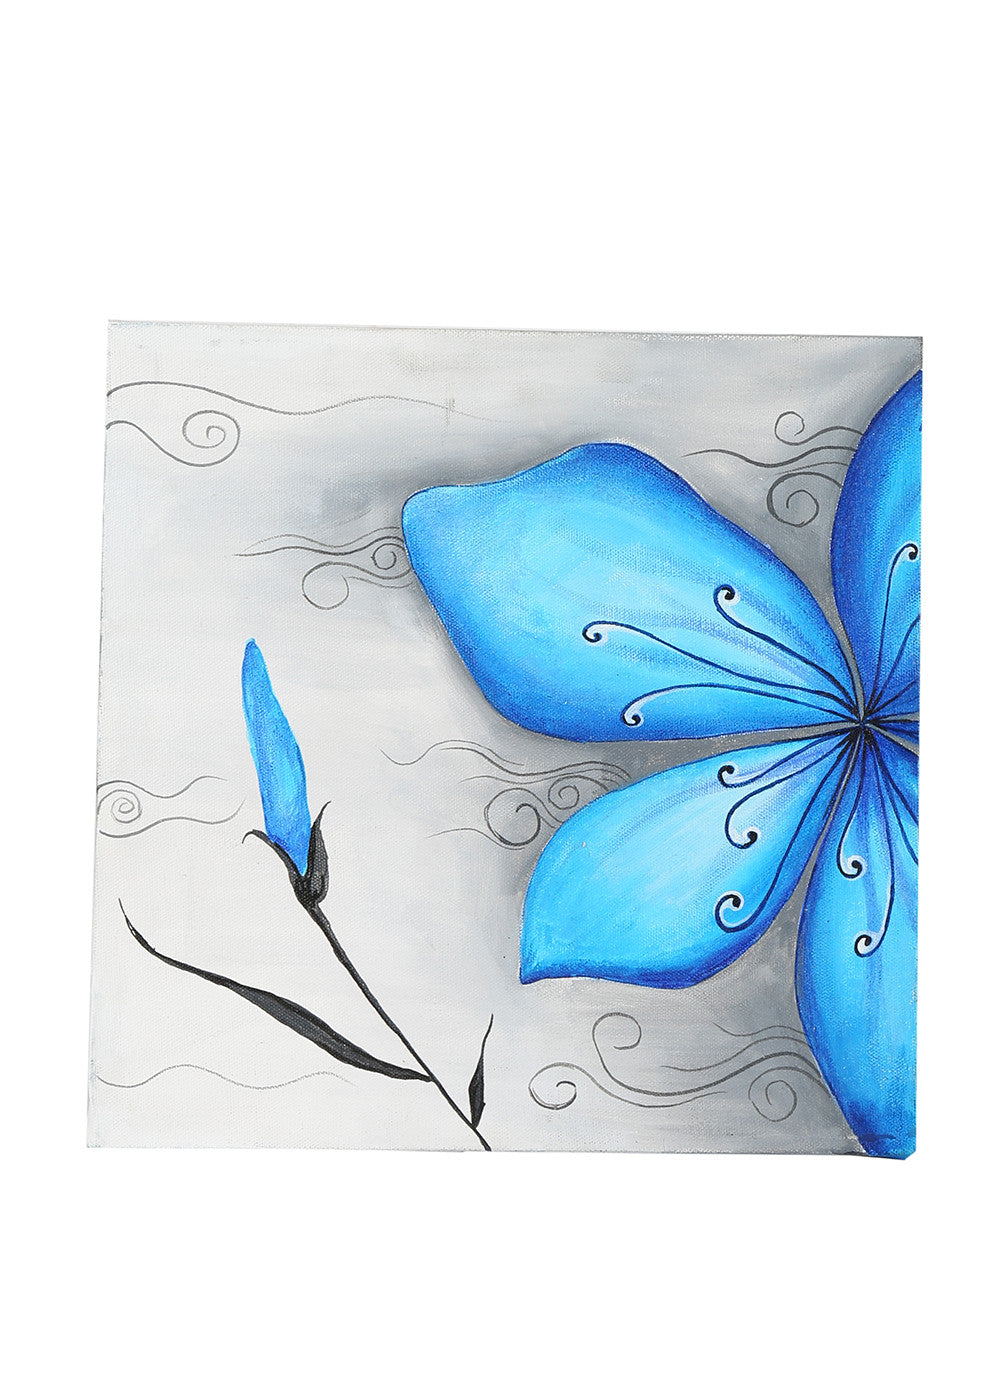 Hand-painted Floral Fantasy Blue Classic Painting - RANGRAGE